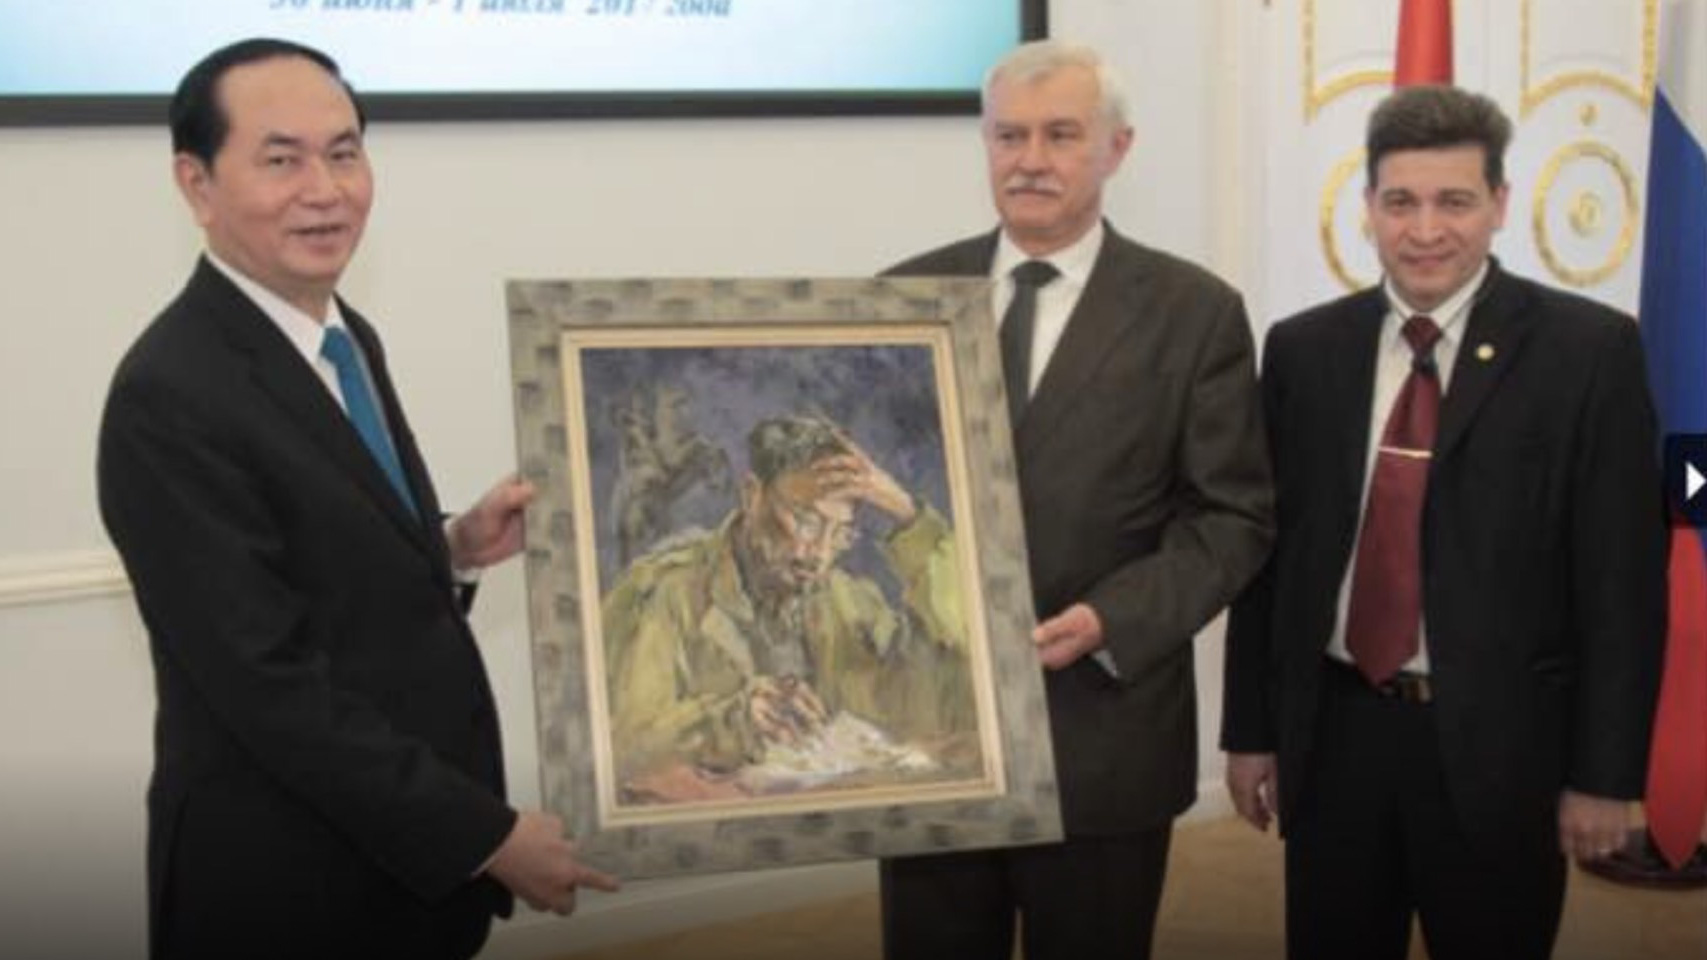 A portrait of late Vietnamese President Ho Chi Minh painted by Tuman Zhumabaev is presented as a gift to Vietnam's then-incumbent State President Tran Dai Quang (left) by Russian government representatives in this photo captured in 2017 and provided by Lilac gallery.